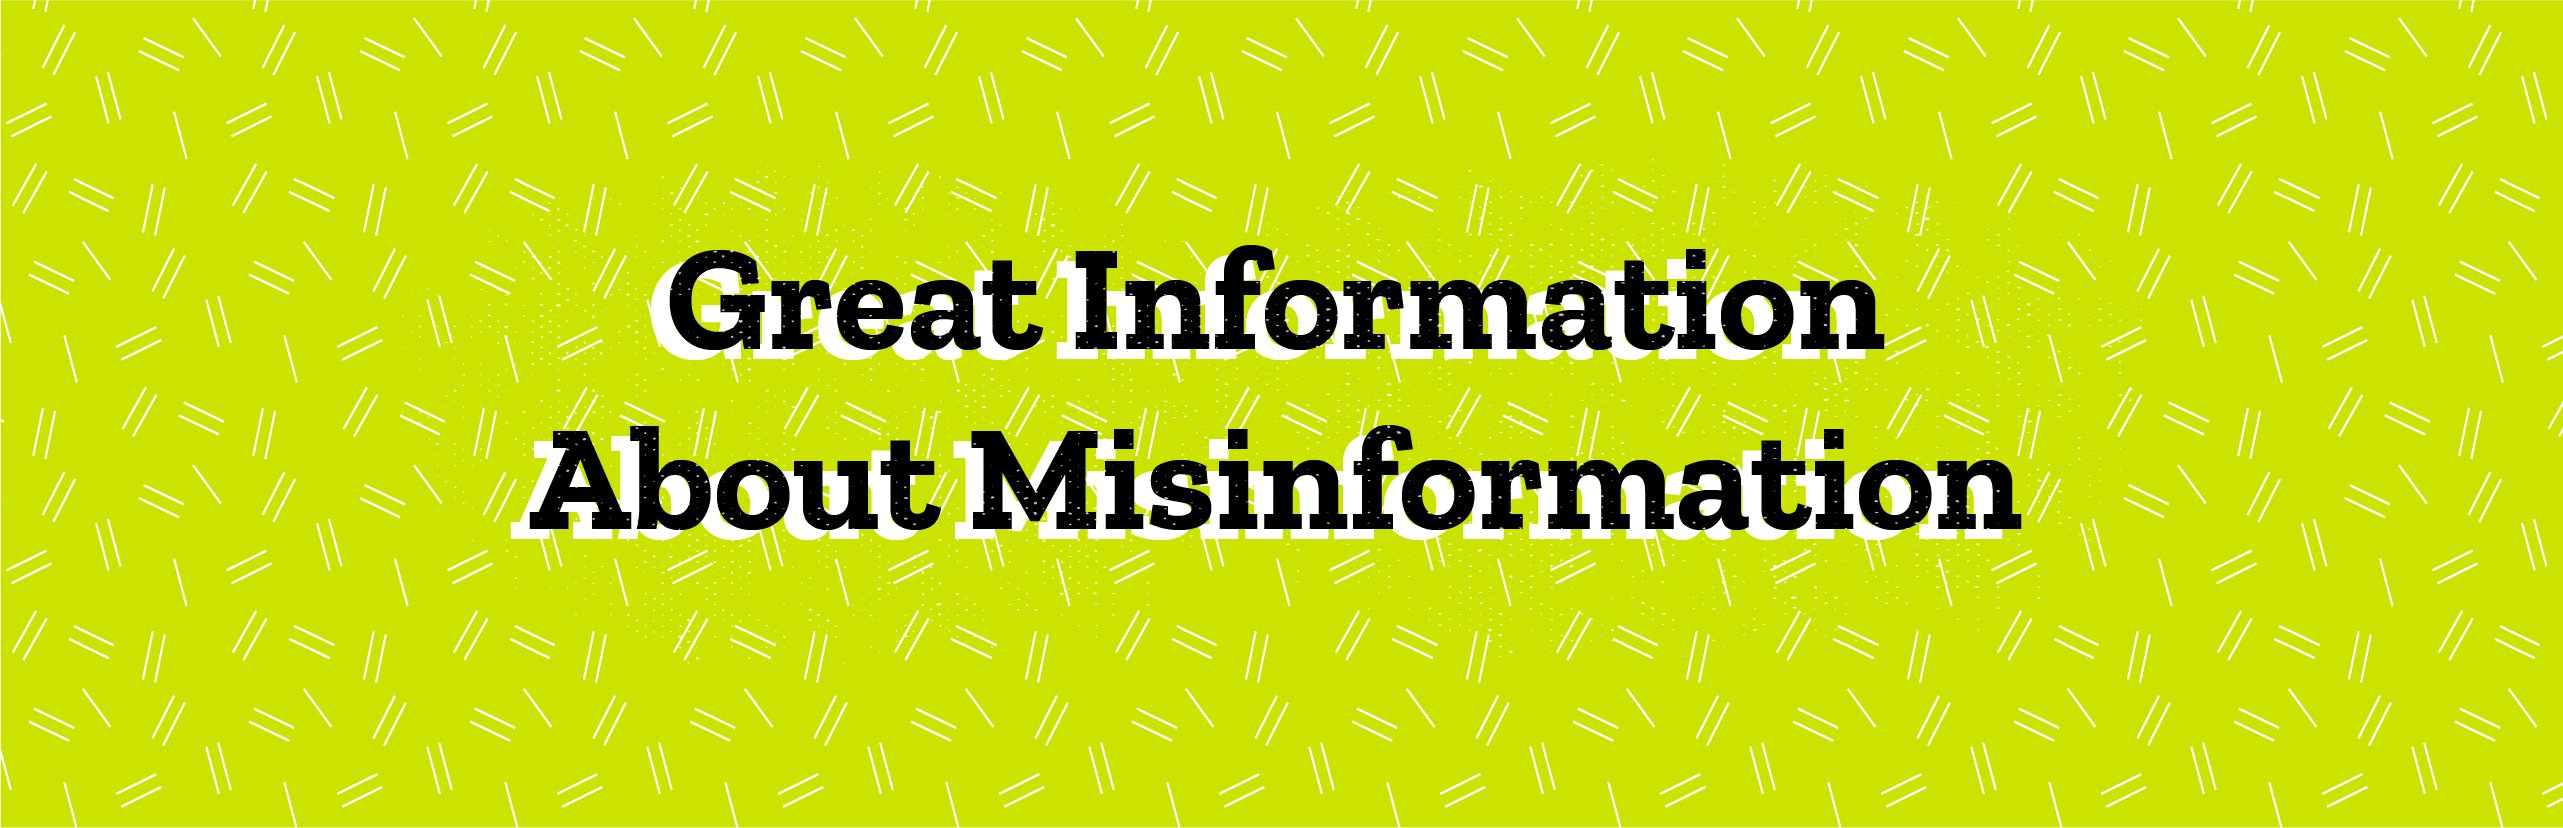 Great Information About Misinformation